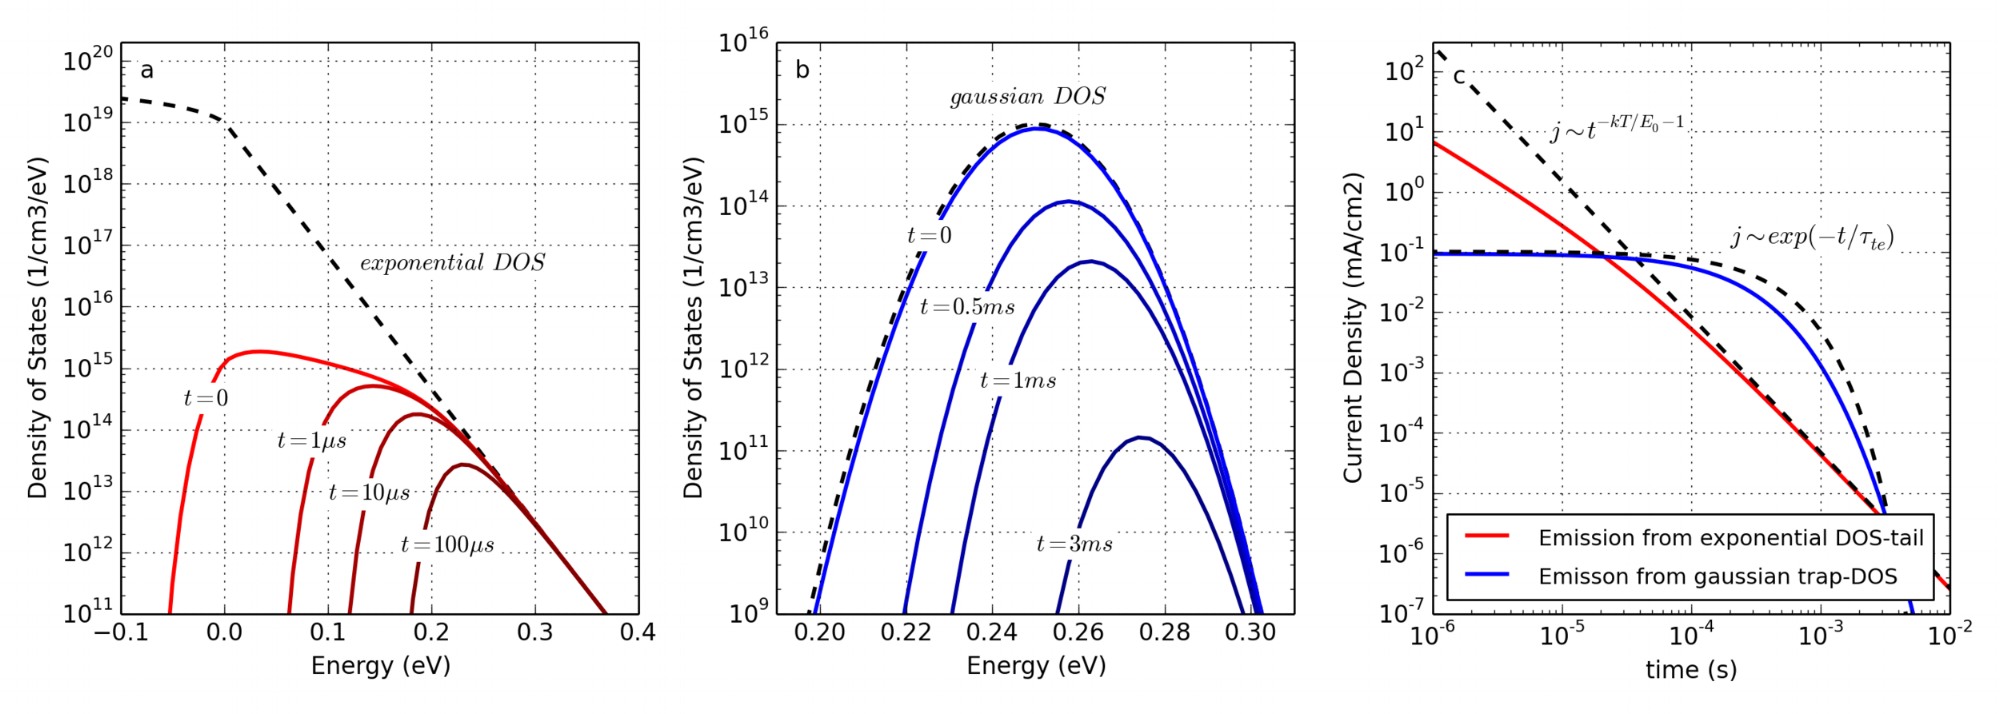 Figure 9. Calculation of the thermal emission of charge carriers from the density of states. (a) The dashed line is the density of states with square-root dependence above the band edge and exponential dependence inside the band. The solid lines represent the charge carrier distributions at different times. The LUMO-level is located at 0 eV, positive energy values reach into the band-gap. (b) Same as in (a) but for a Gaussian DOS. (c) Calculated currents from carrier emission of (a) and (b) including analytical fits according to Equations ( 14 ) and ( 16 ).